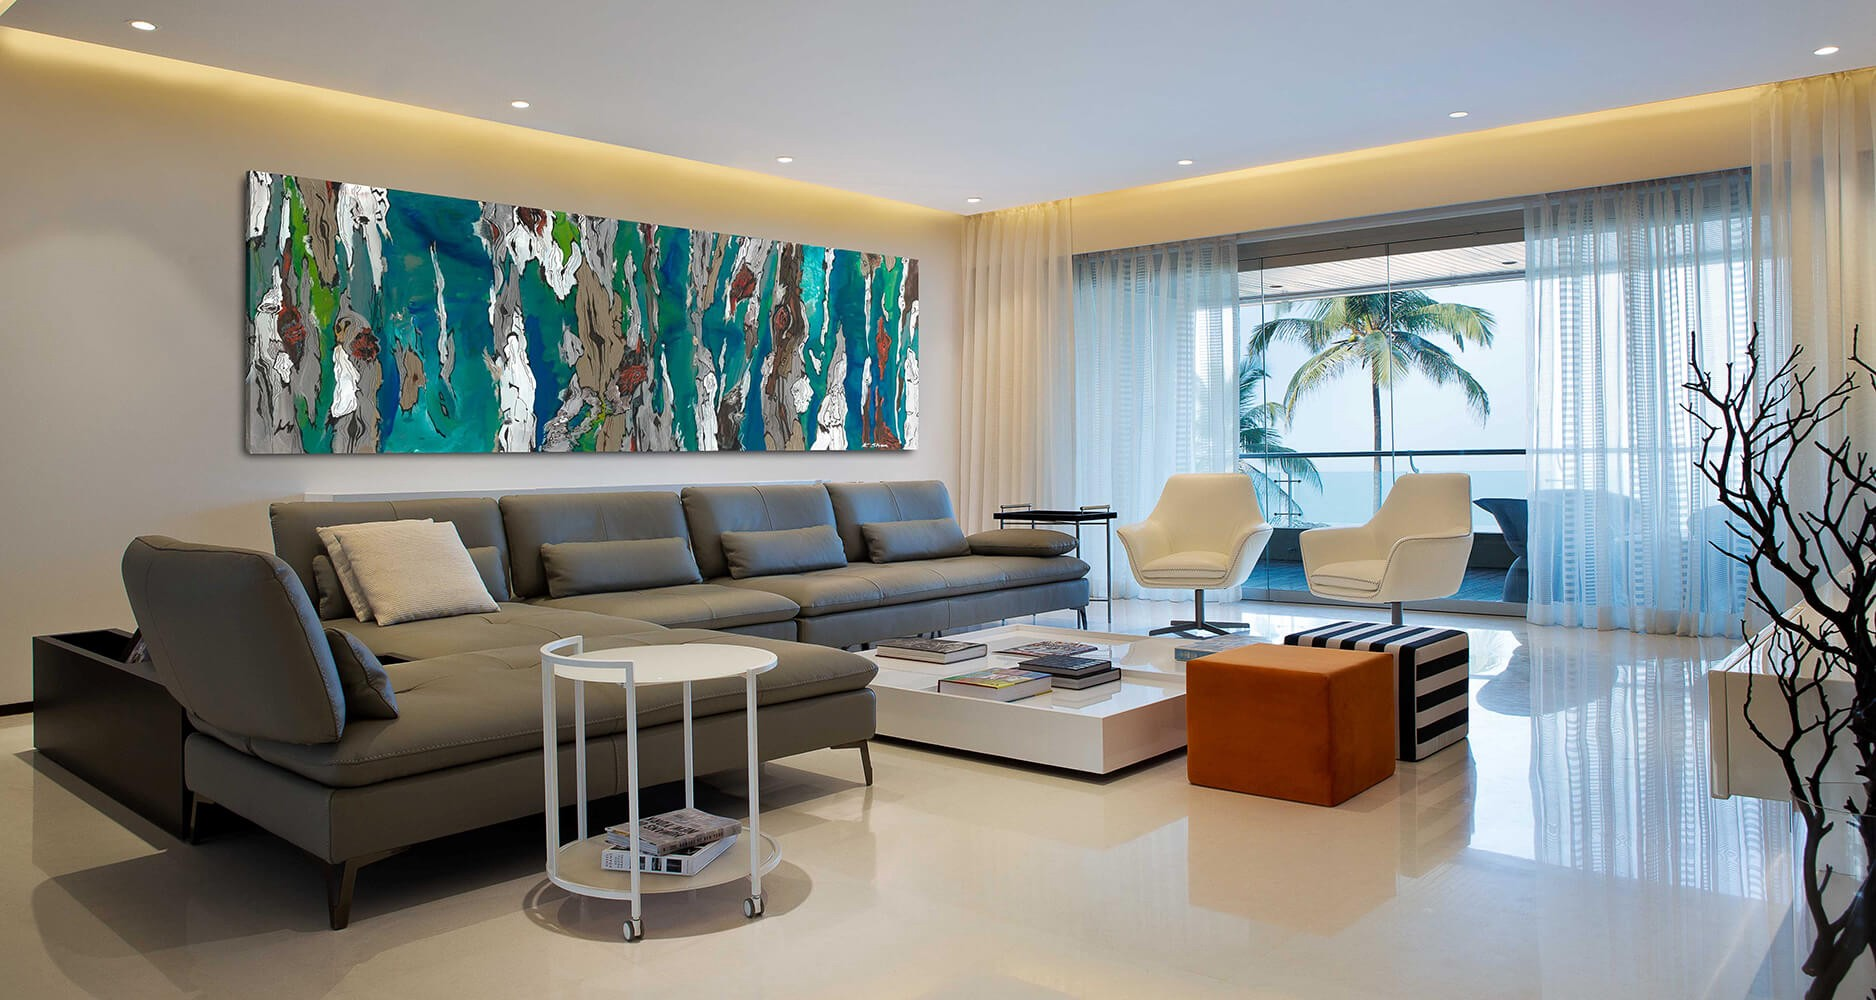 Consider These Tips To Find The Best Interior Designers In Mumbai By Amvi Twong Medium